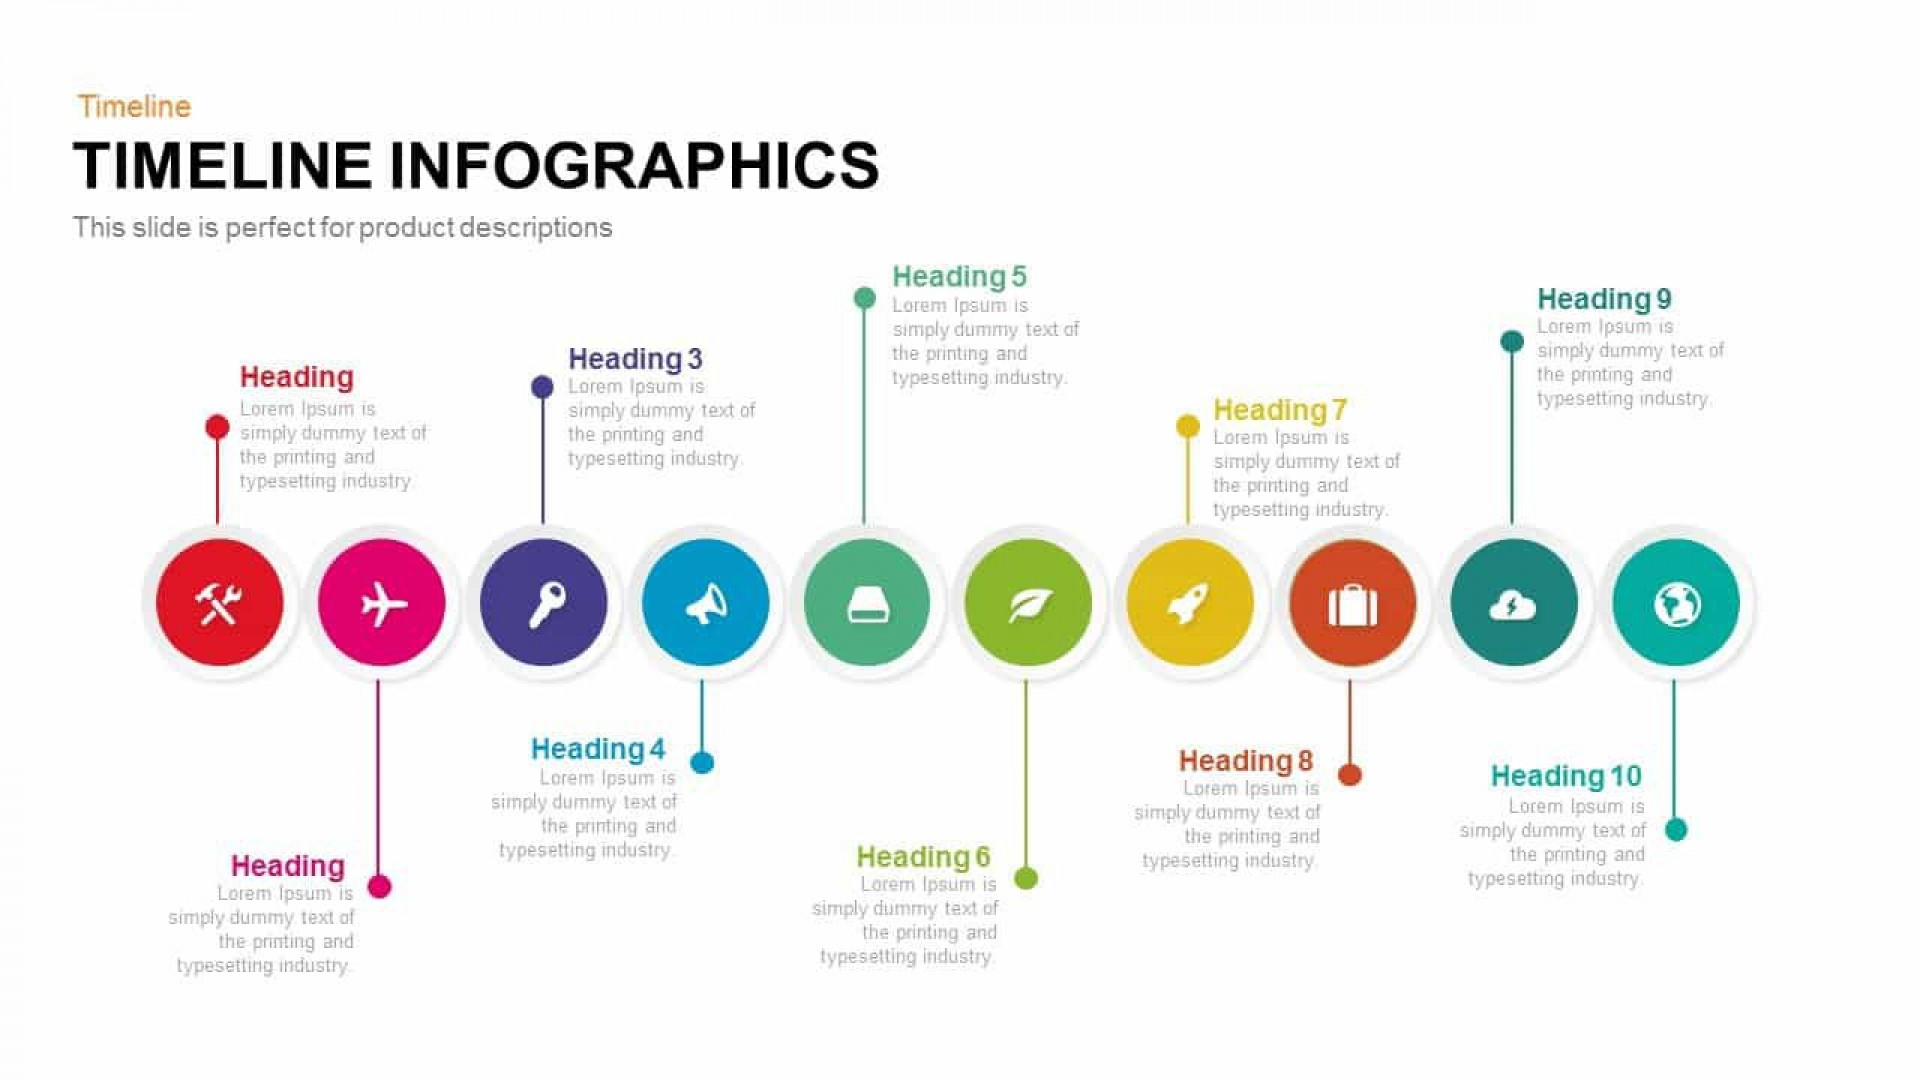 008 Phenomenal Timeline Infographic Template Powerpoint Download Example  Free1920